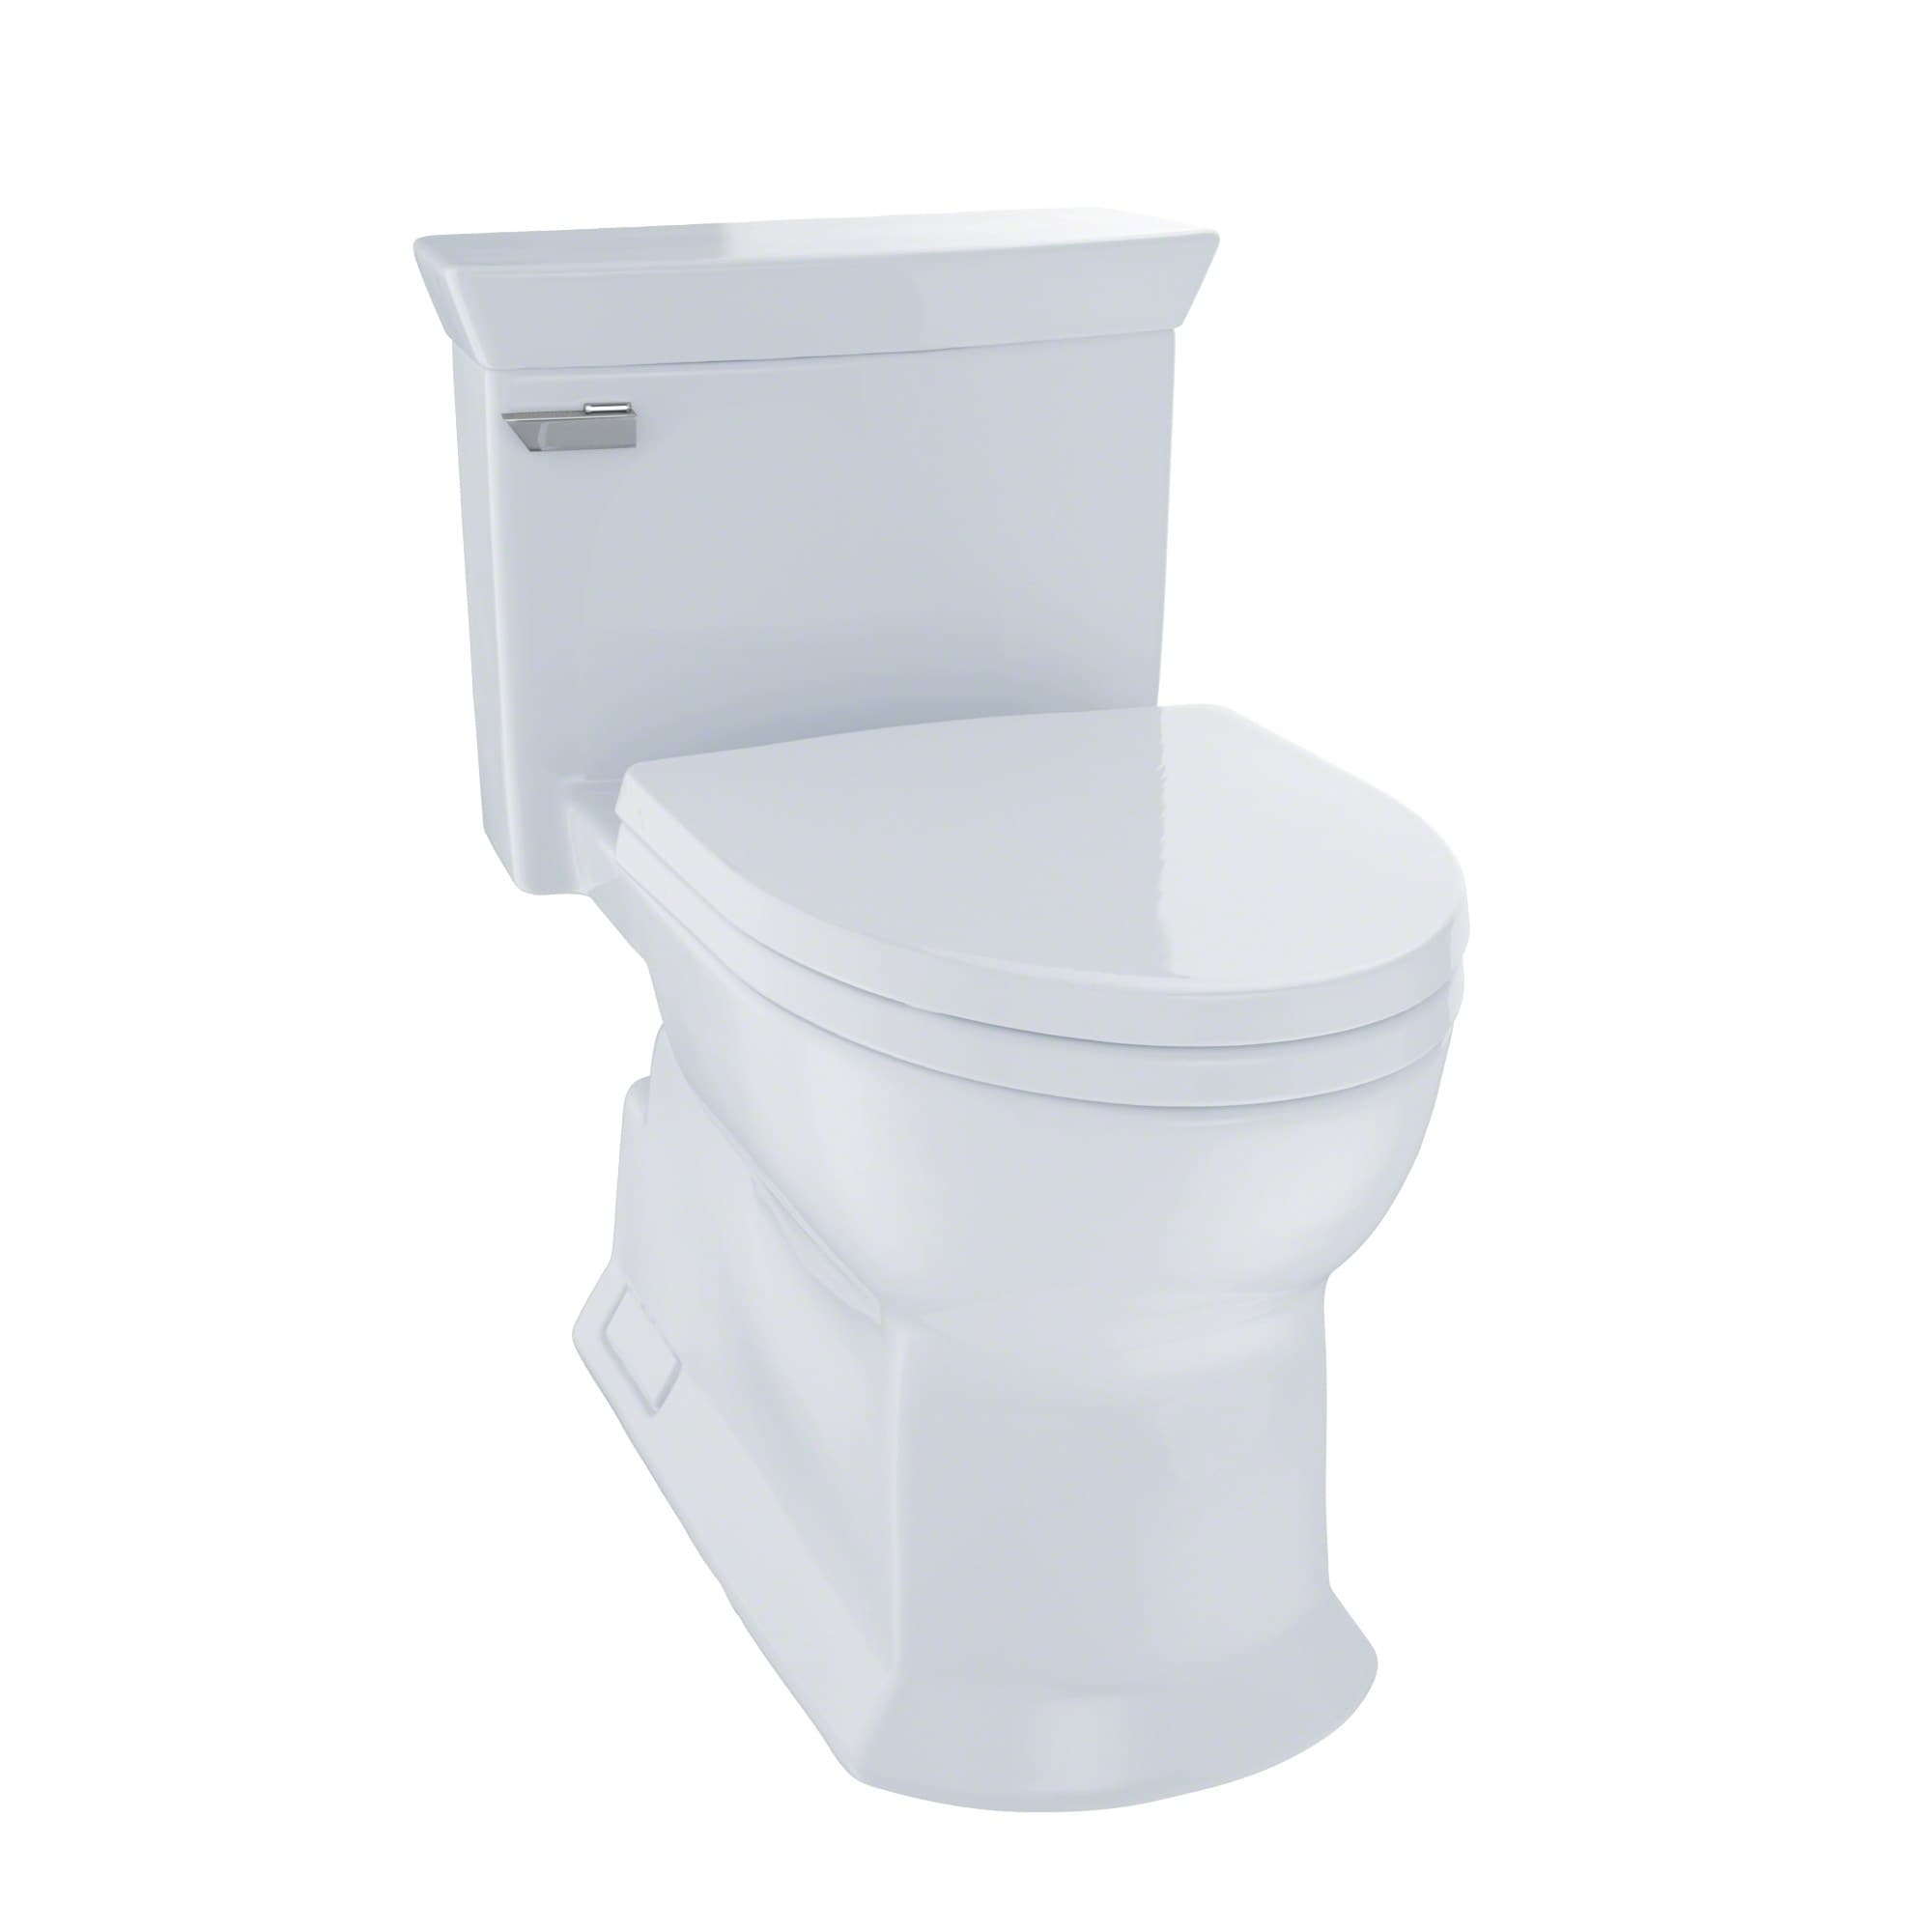 Toilets | Find Great Home Improvement Deals Shopping at Overstock.com